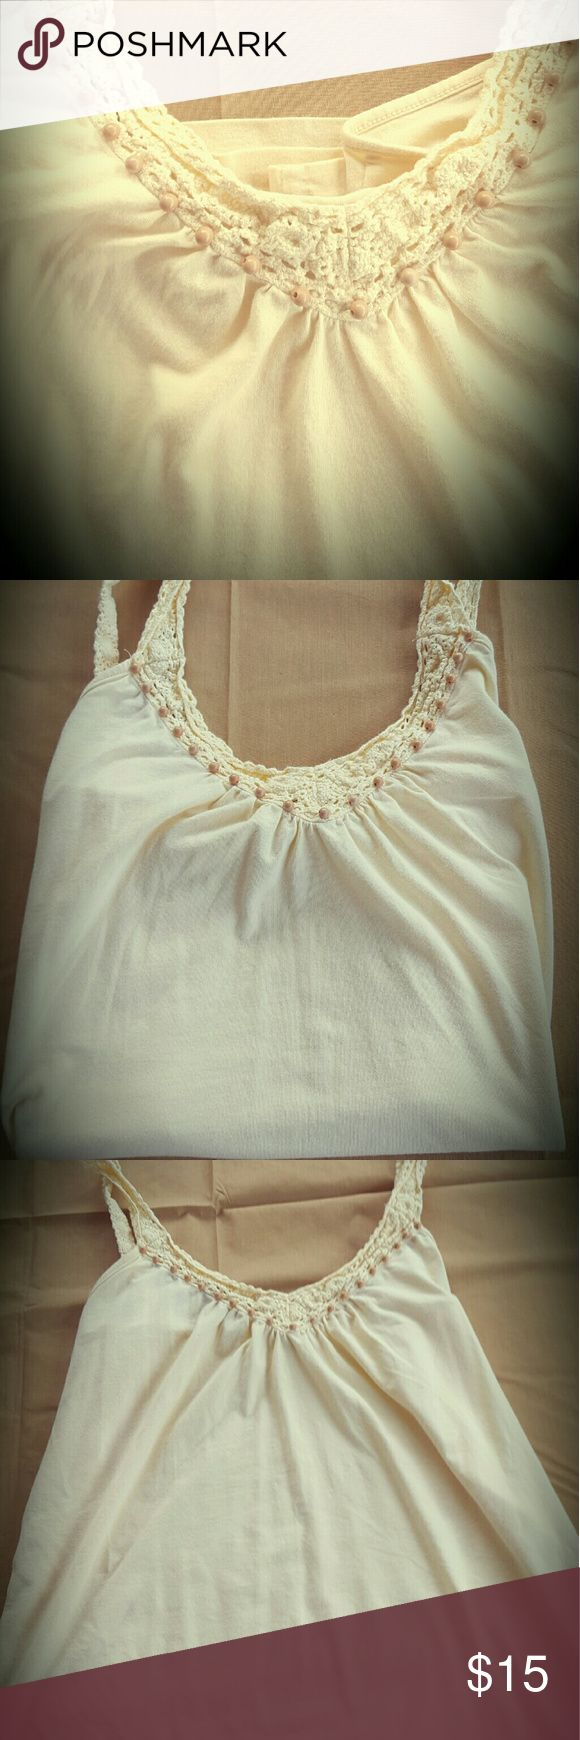 Super Soft Ann Taylor Pale Yellow Cami Top In typical Ann Taylor fashion, this cotton and spandex top is sexy and soft.  With crocheted  straps and wooden embellishments  it is a delicate and a lovely cami/shell/tank top perfect for any outfit. Ann Taylor Tops Tank Tops